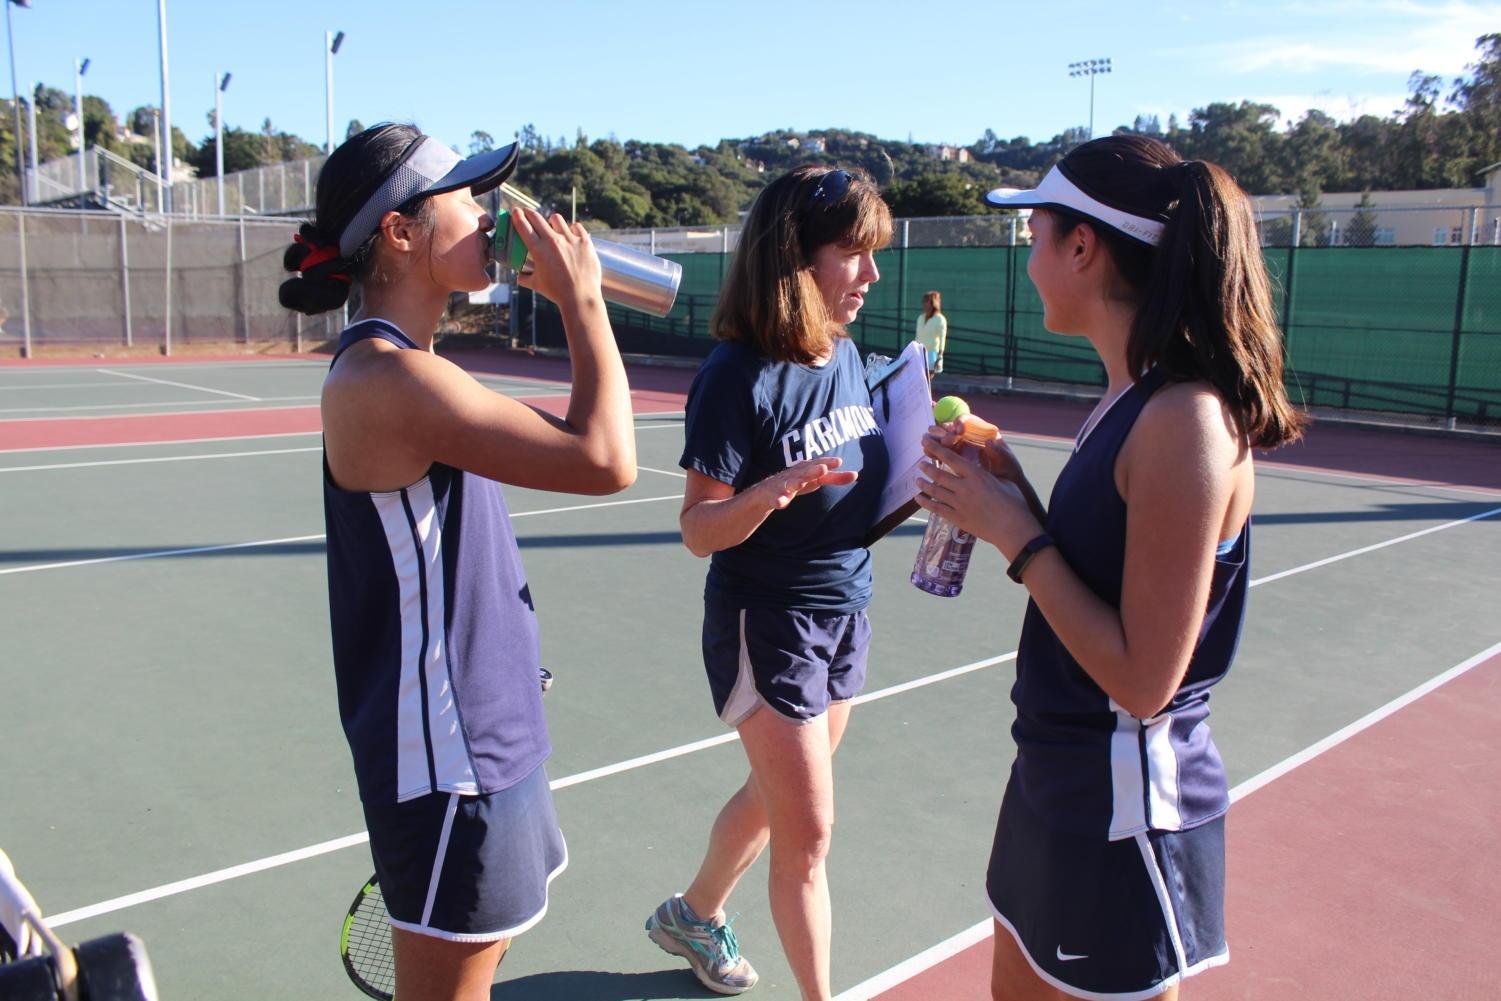 Head+Coach+Margaret+Goldsmith+gives+Nguyen+and+Gittoes+advice+mid-match+on+how+to+improve+their+teamwork.